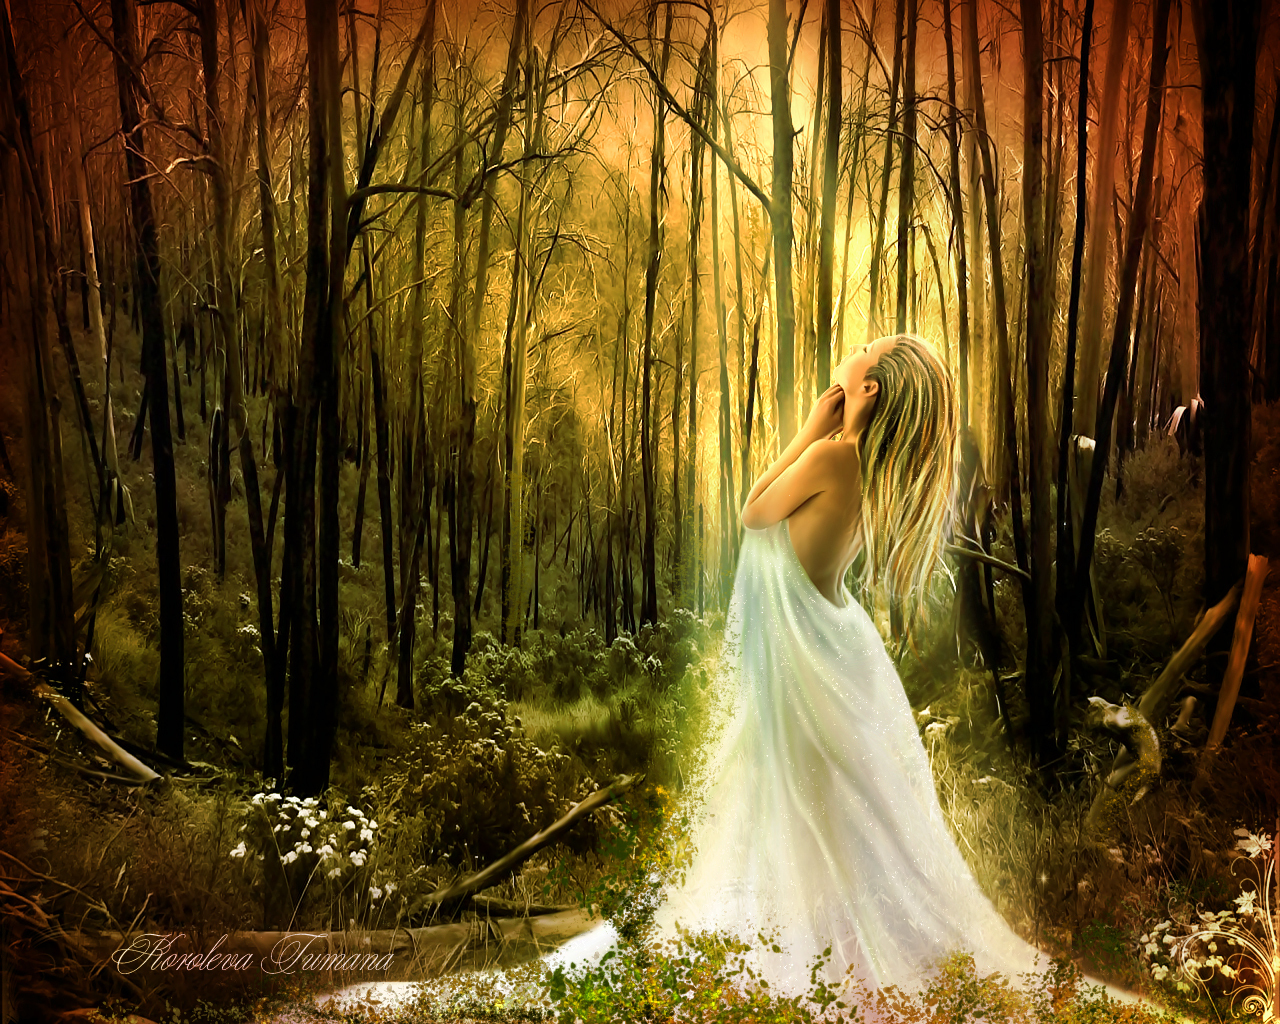 forest fairy wallpaper - photo #15